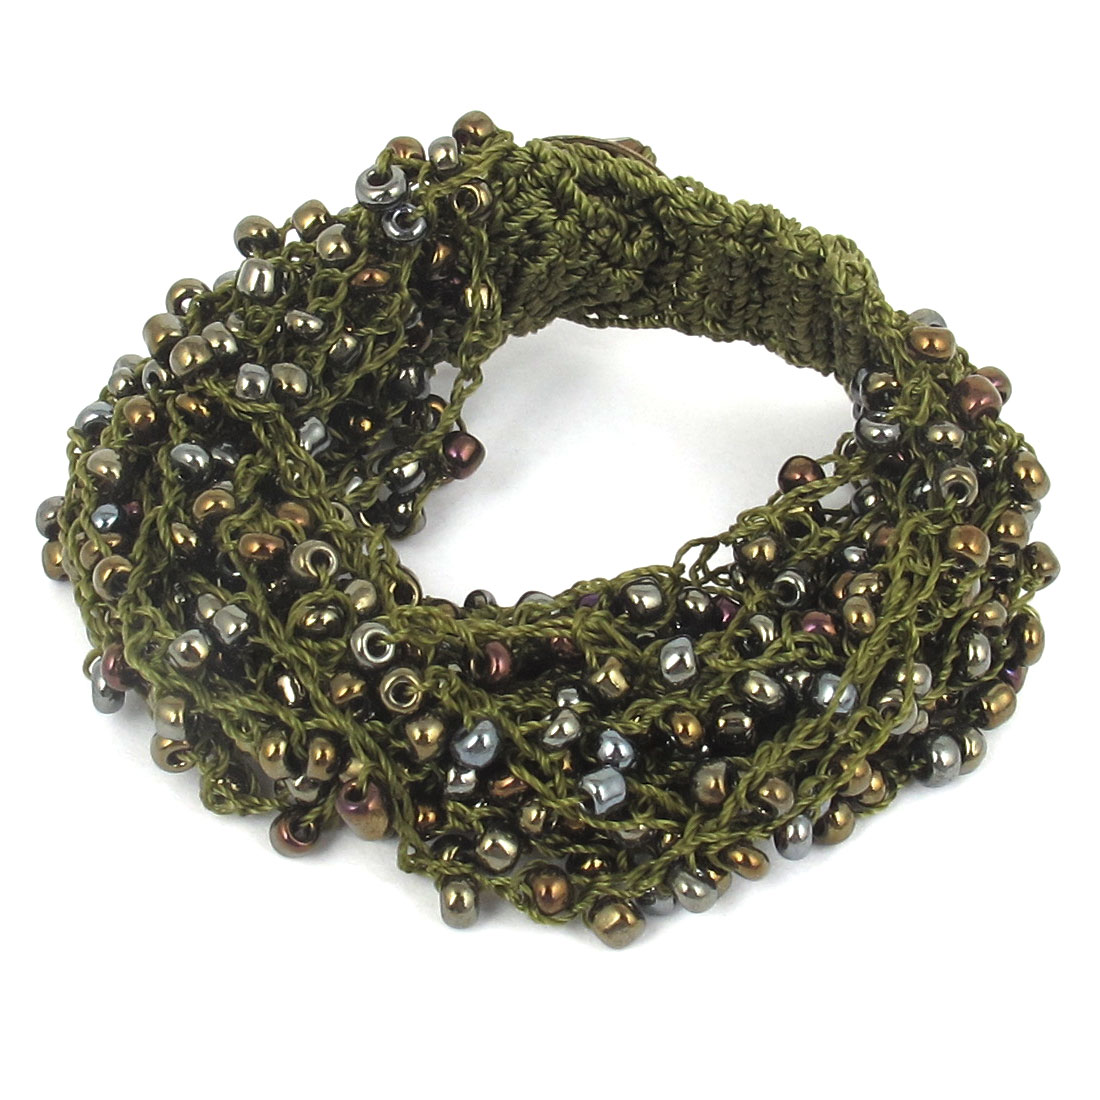 Women National Style Plastic Beaded Multi-layer Buttoned Bangle Bracelet Olive Green